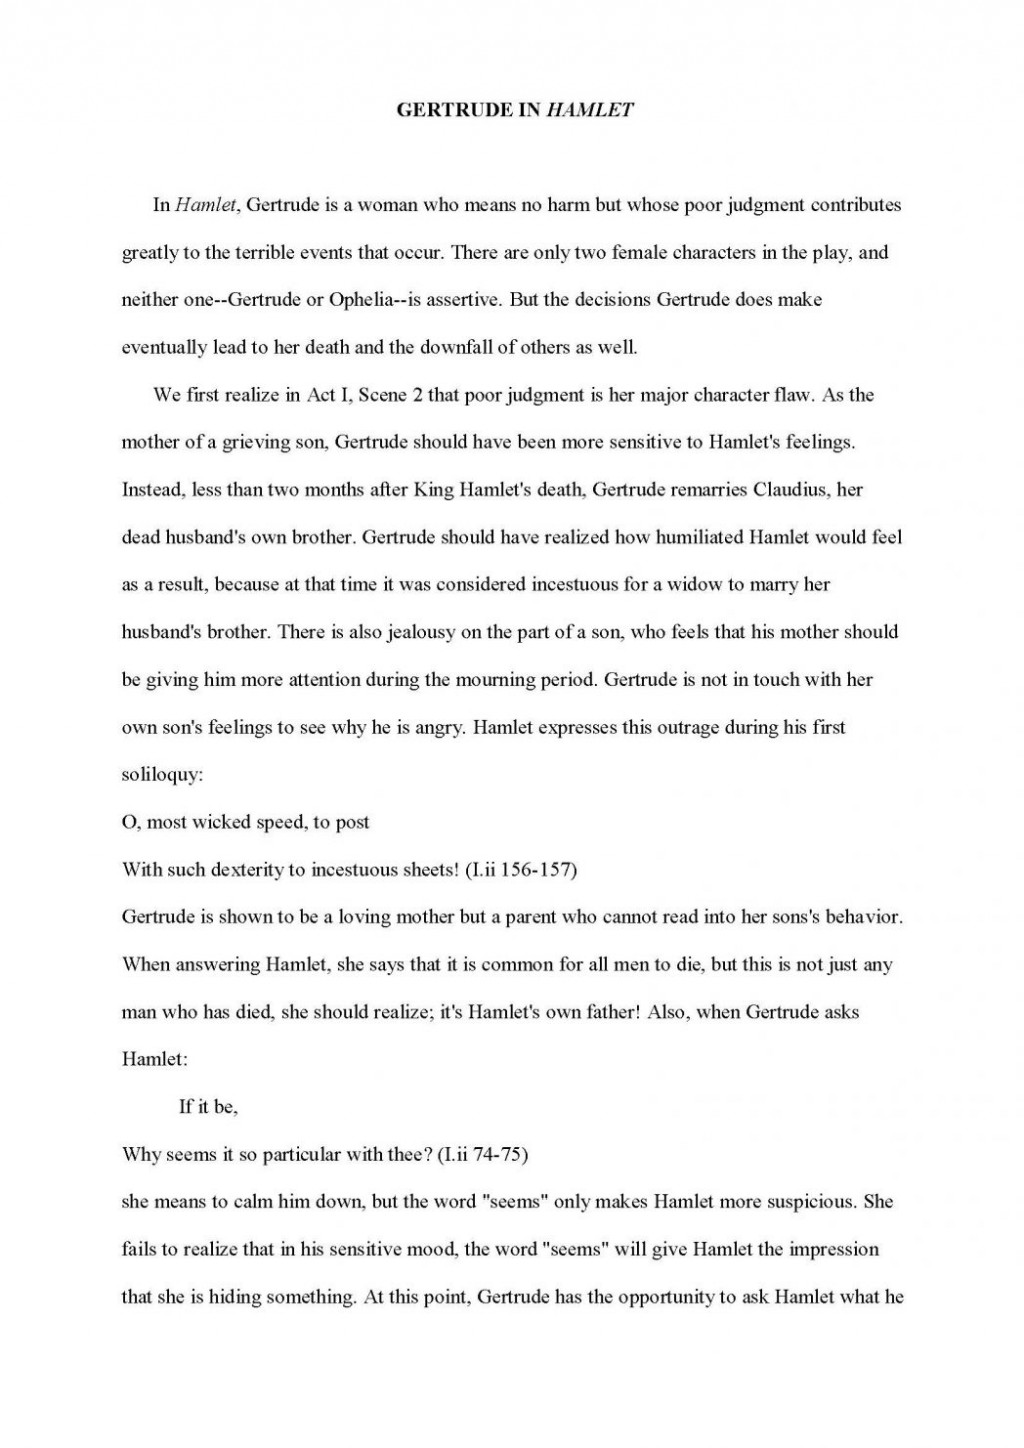 005 Profile Essays Examples Character Analysis Sample Essay Formal Characterization Paper Ex Example Characters Comparing 1048x1482 How To Write An Astounding On A Research Large